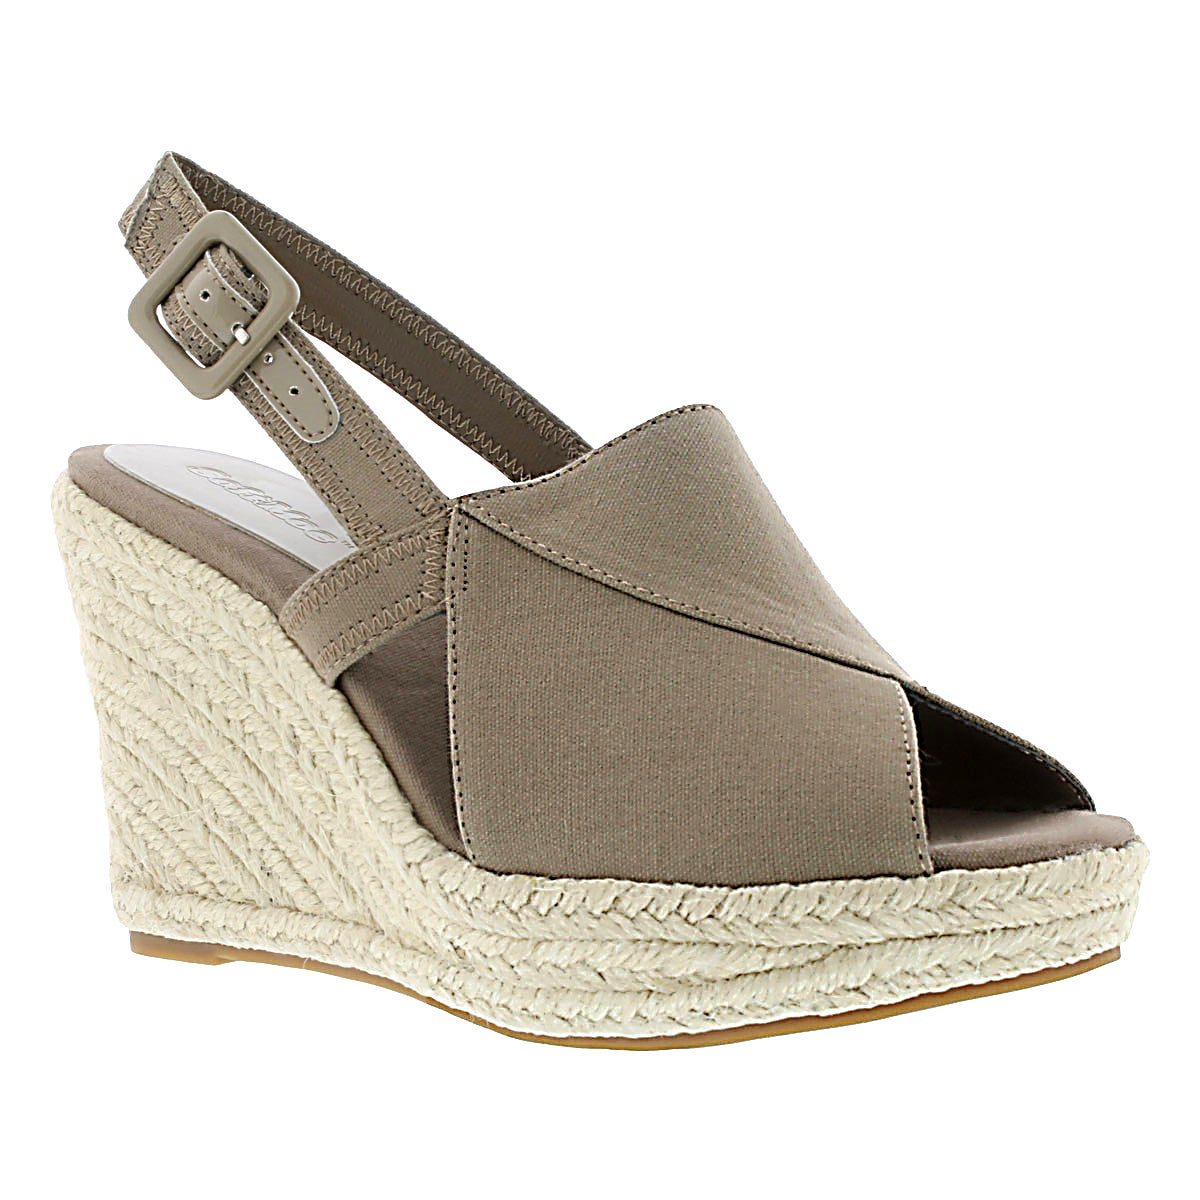 Lds Enya beige wedge sandal